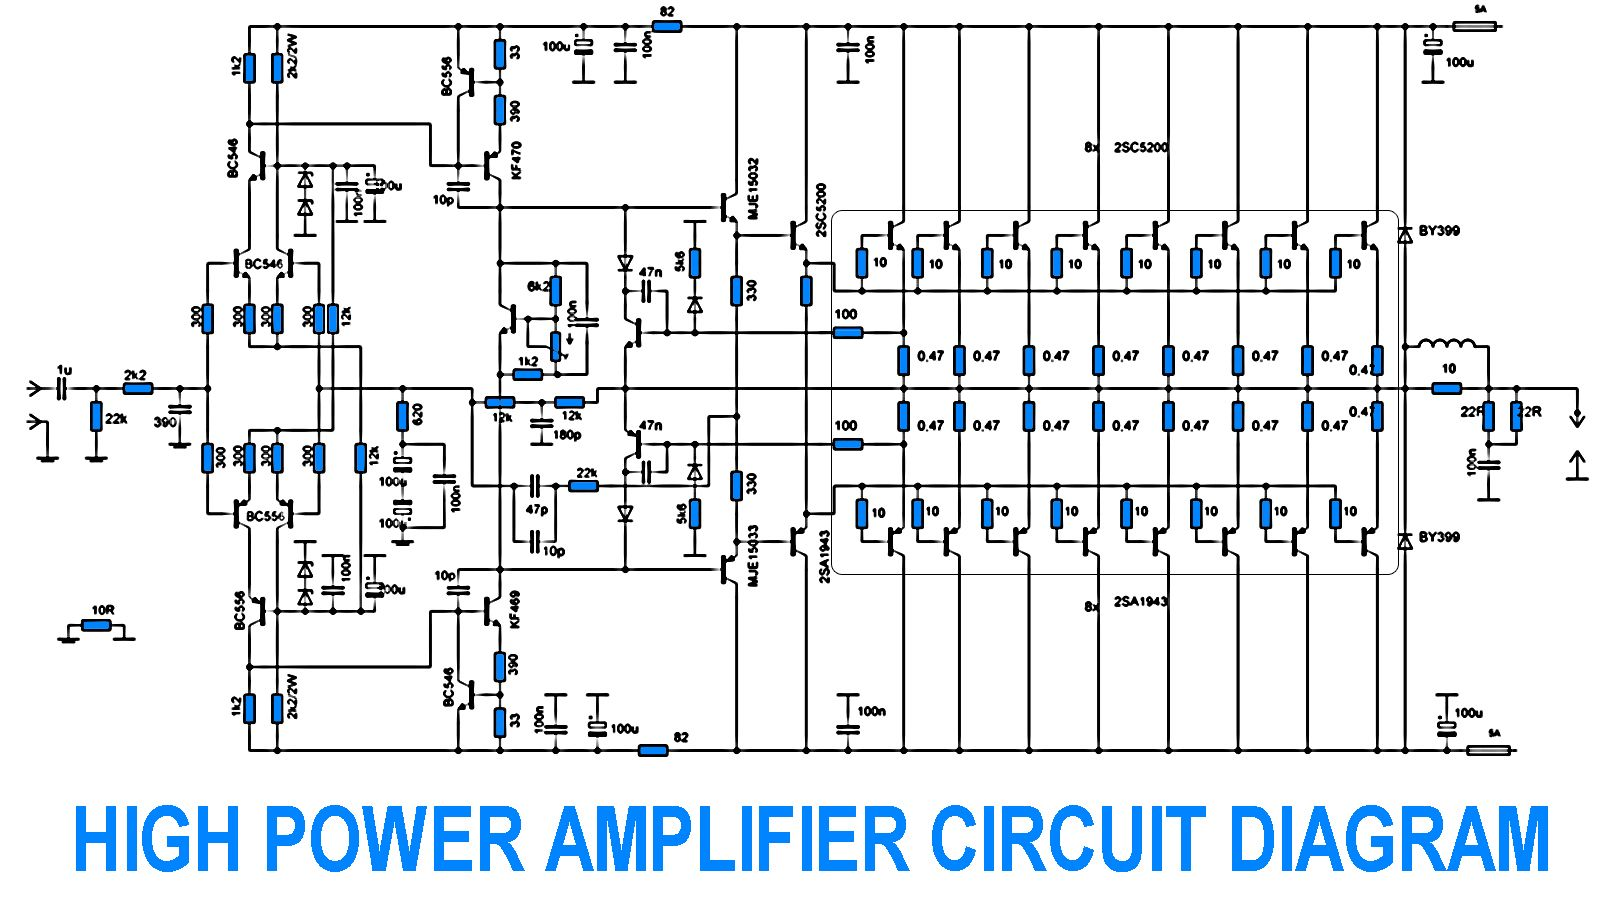 medium resolution of 700w power amplifier with 2sc5200 2sa1943